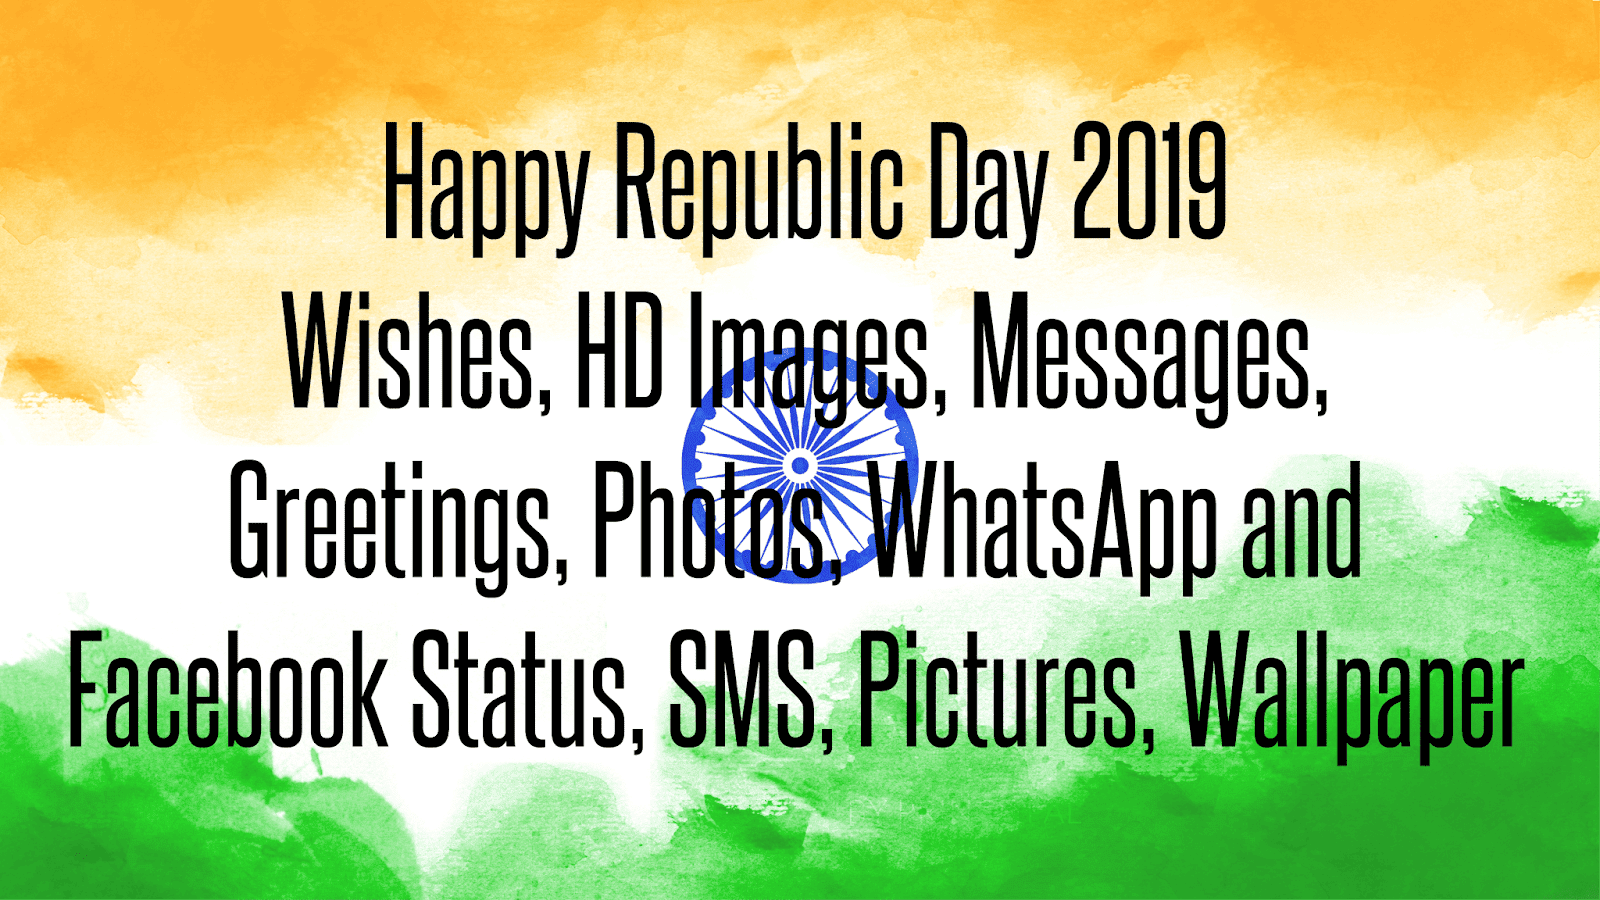 Happy Republic Day 2019 Wishes Hd Images Messages Greetings